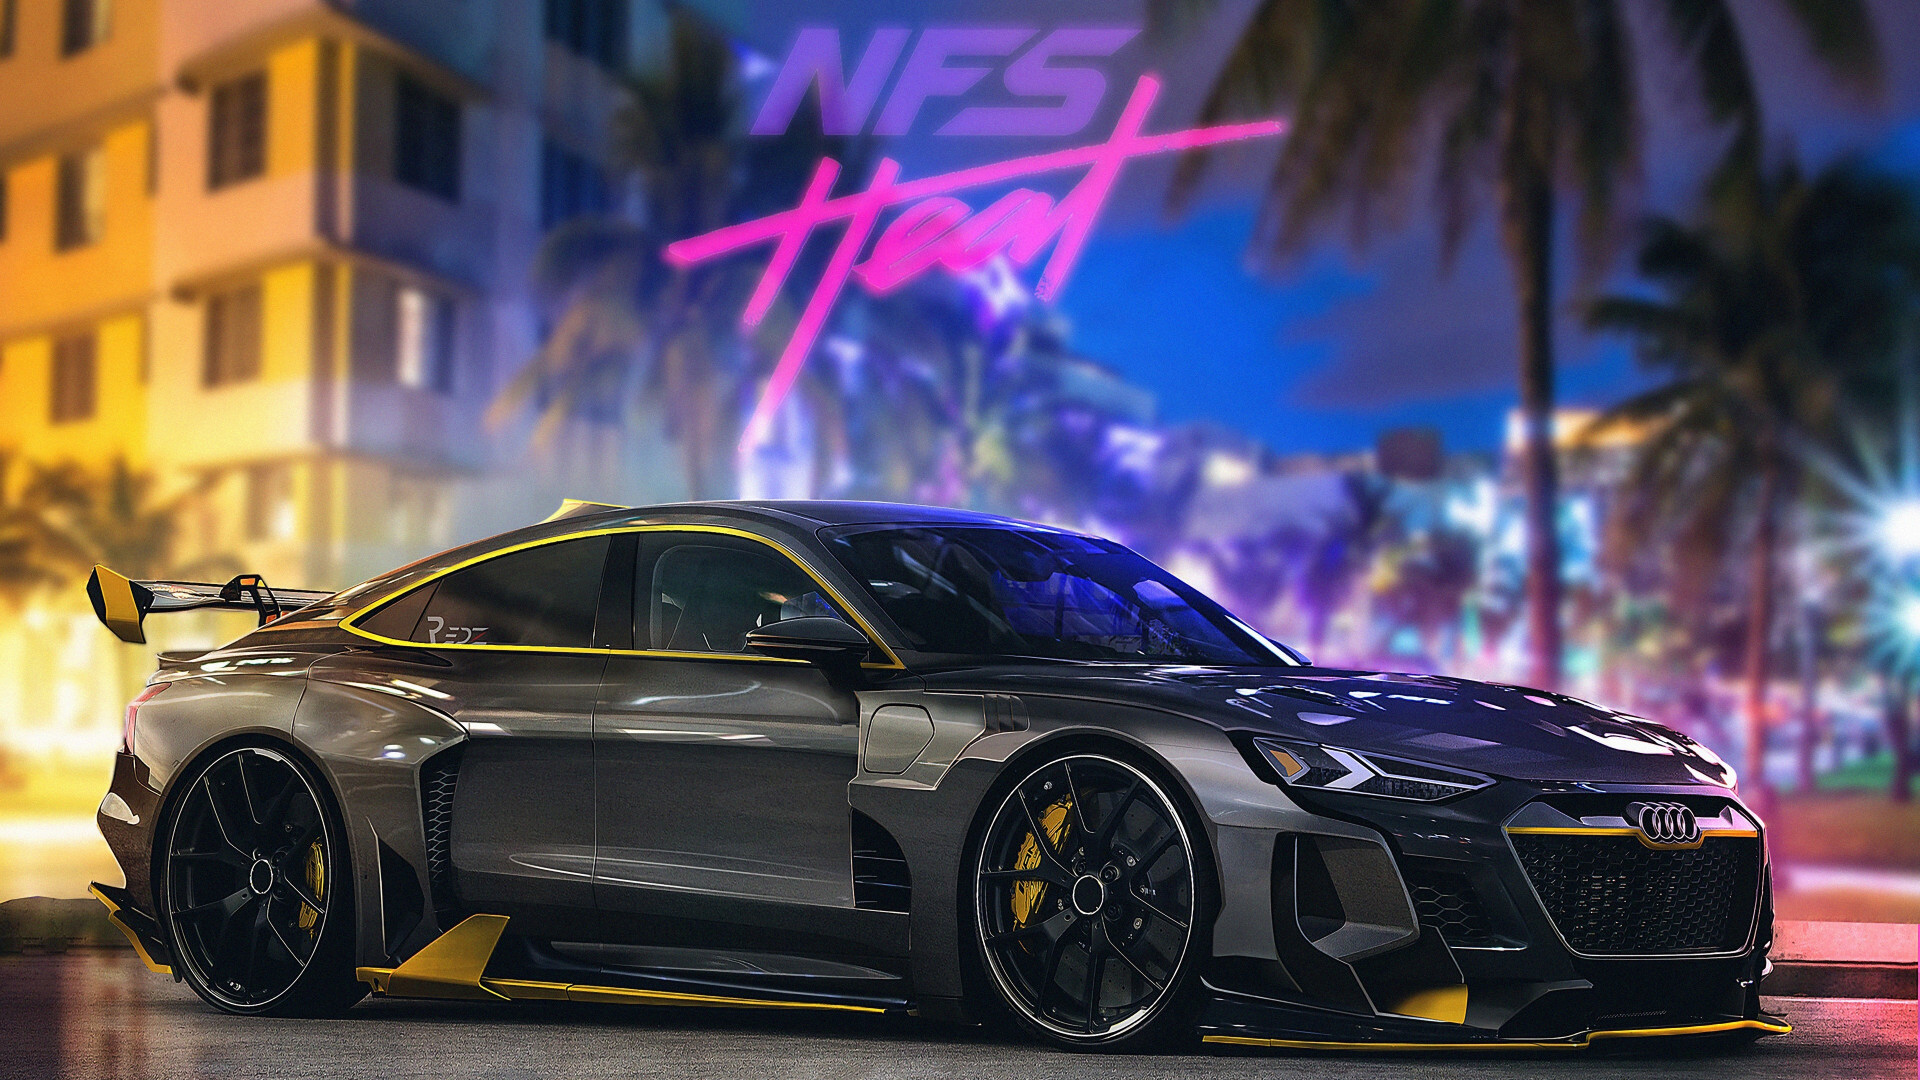 Download Wallpaper Audi In Need For Speed Heat 1920x1080